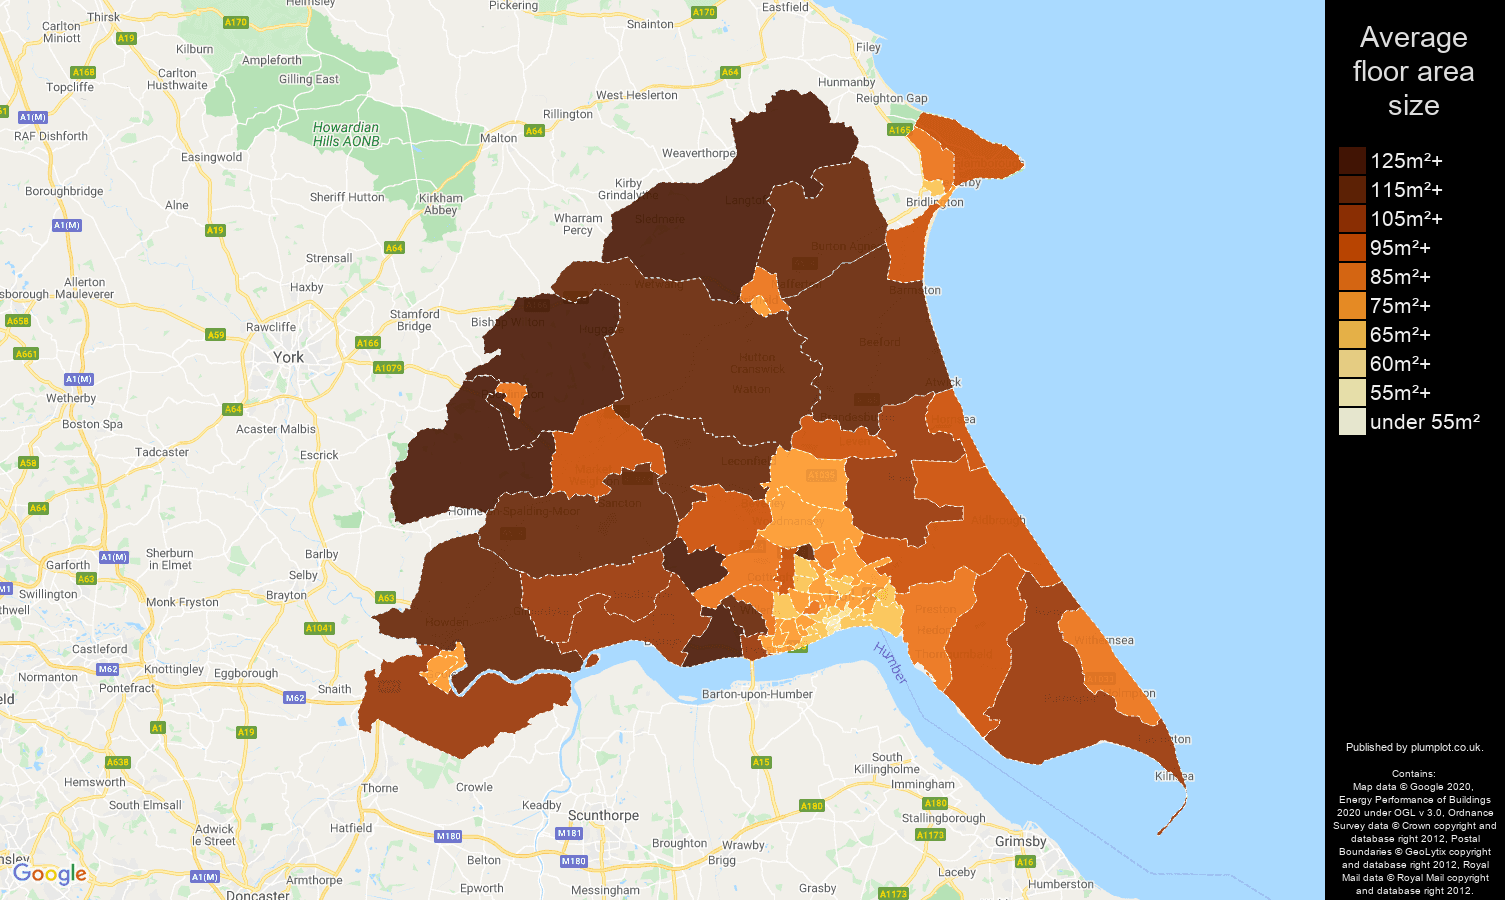 East Riding of Yorkshire map of average floor area size of properties